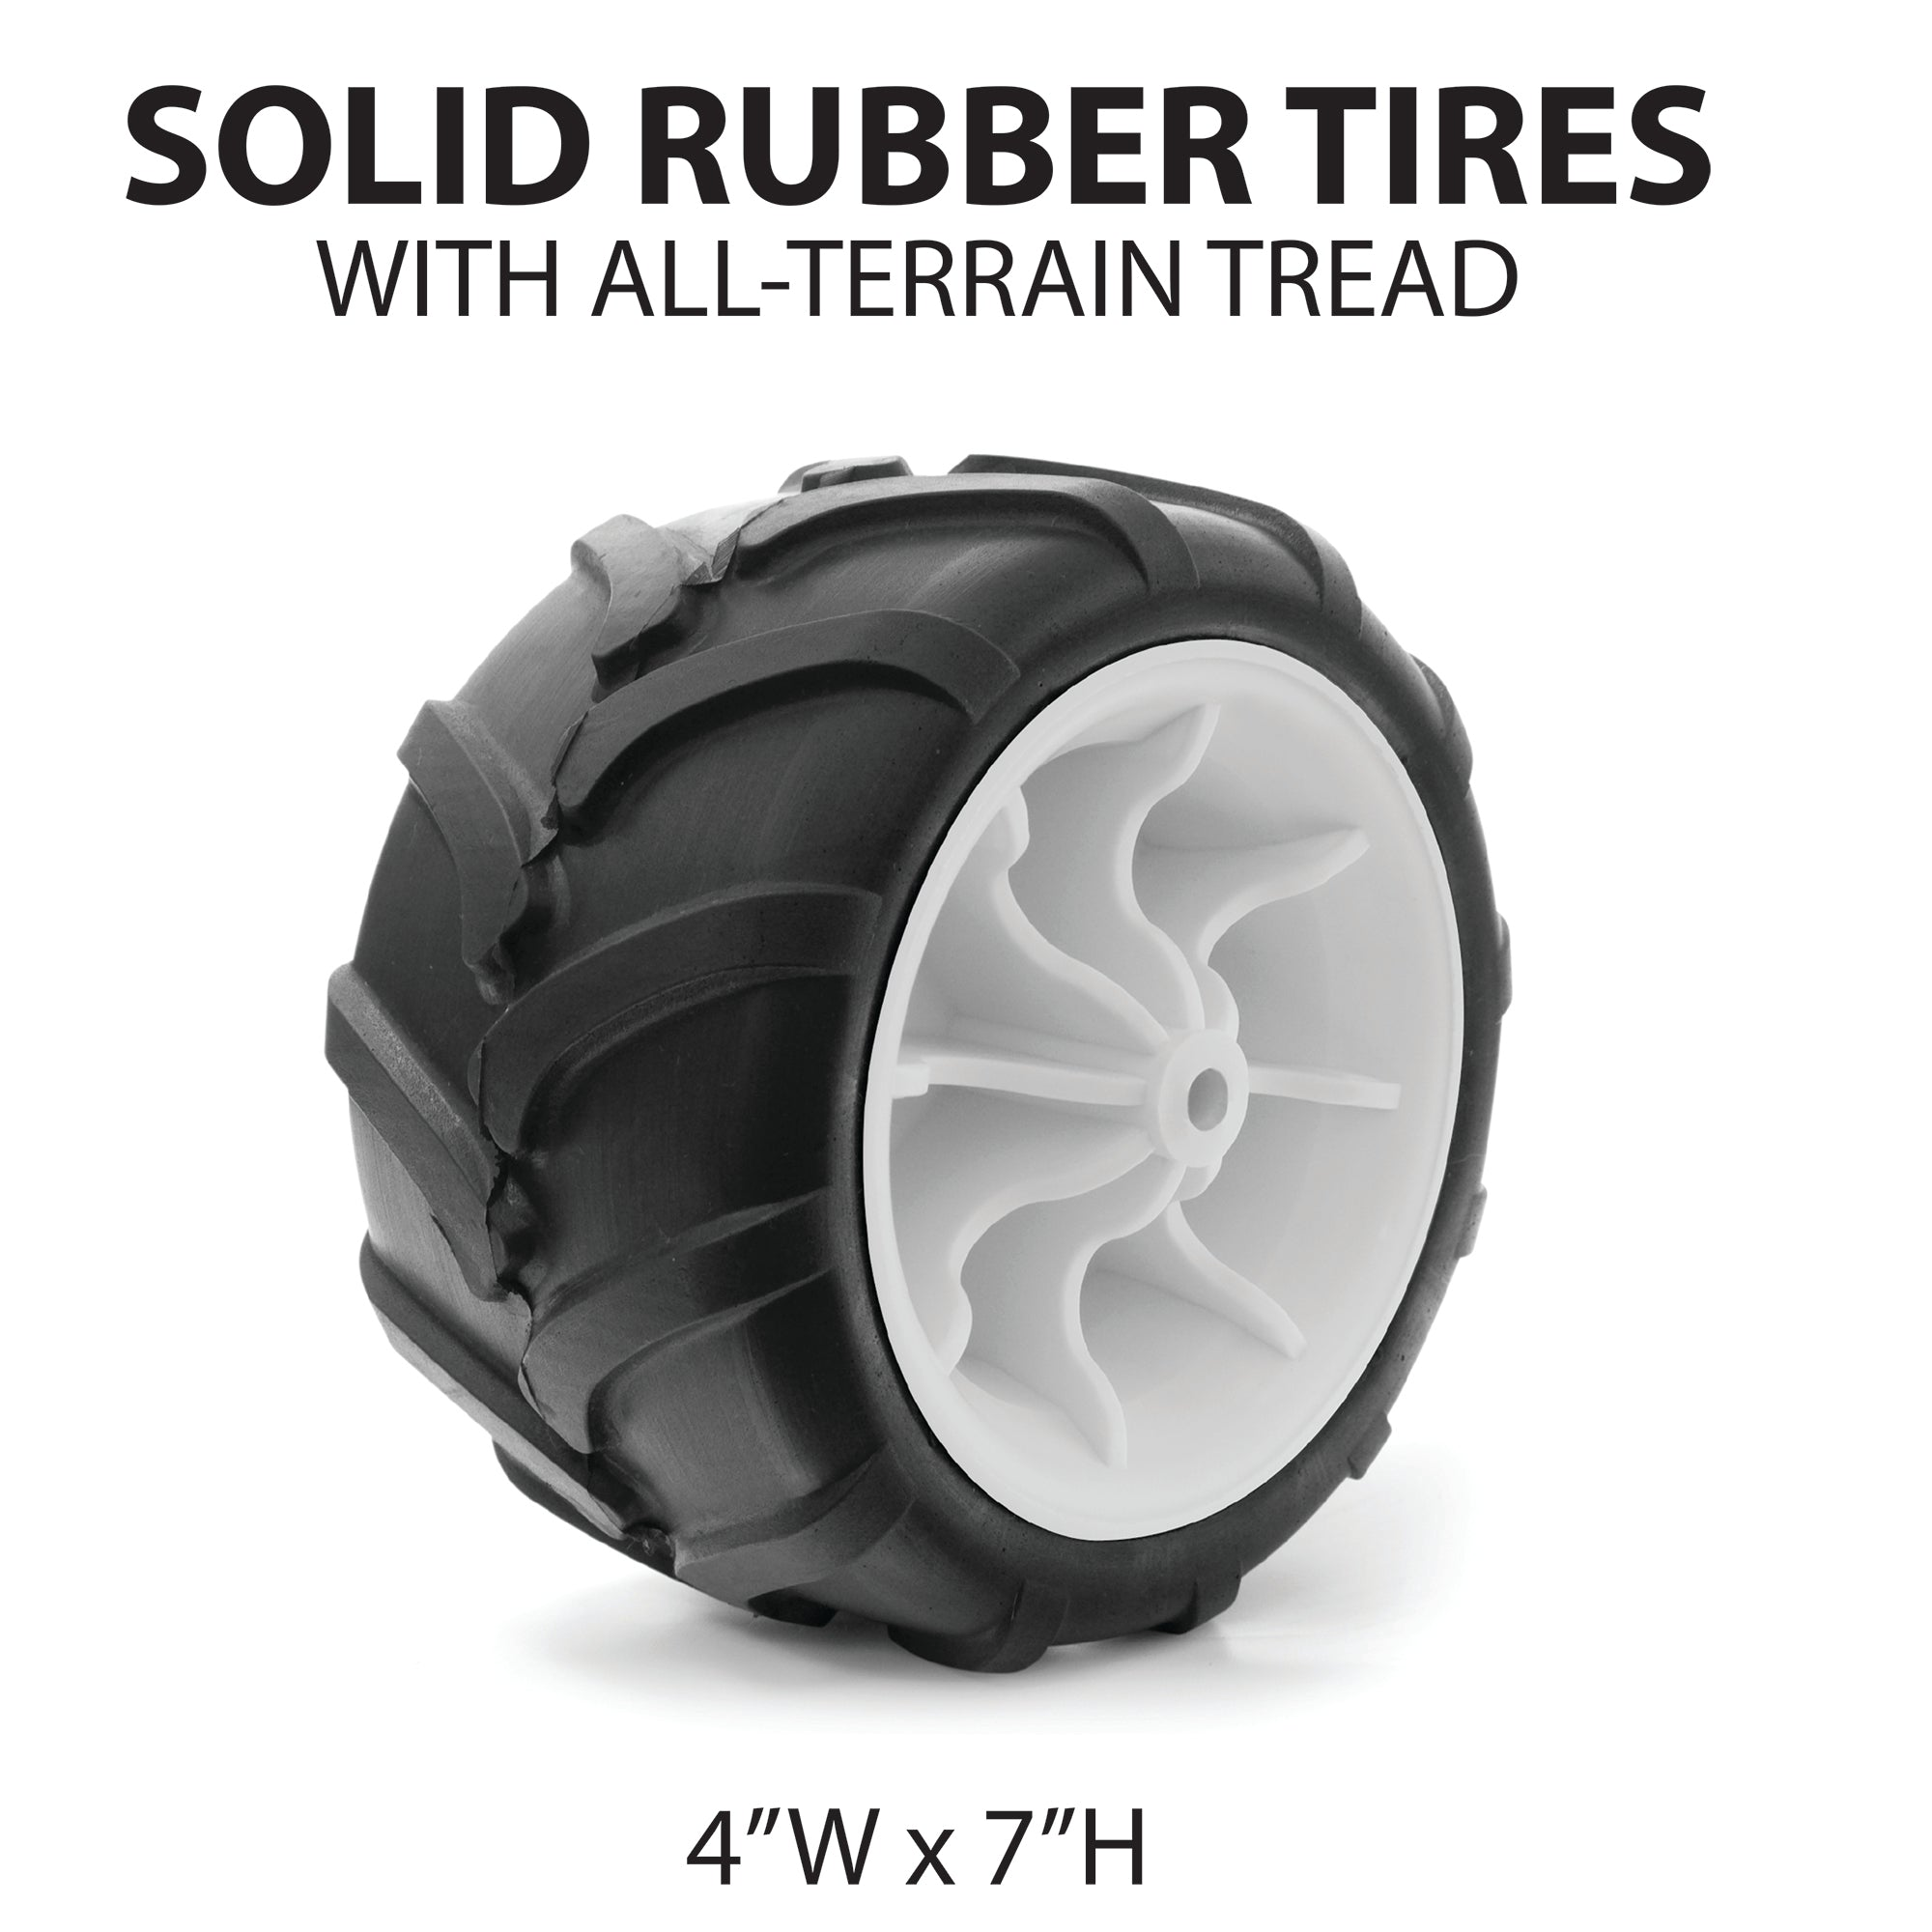 All-Terrain Rubber Wagon Wheels